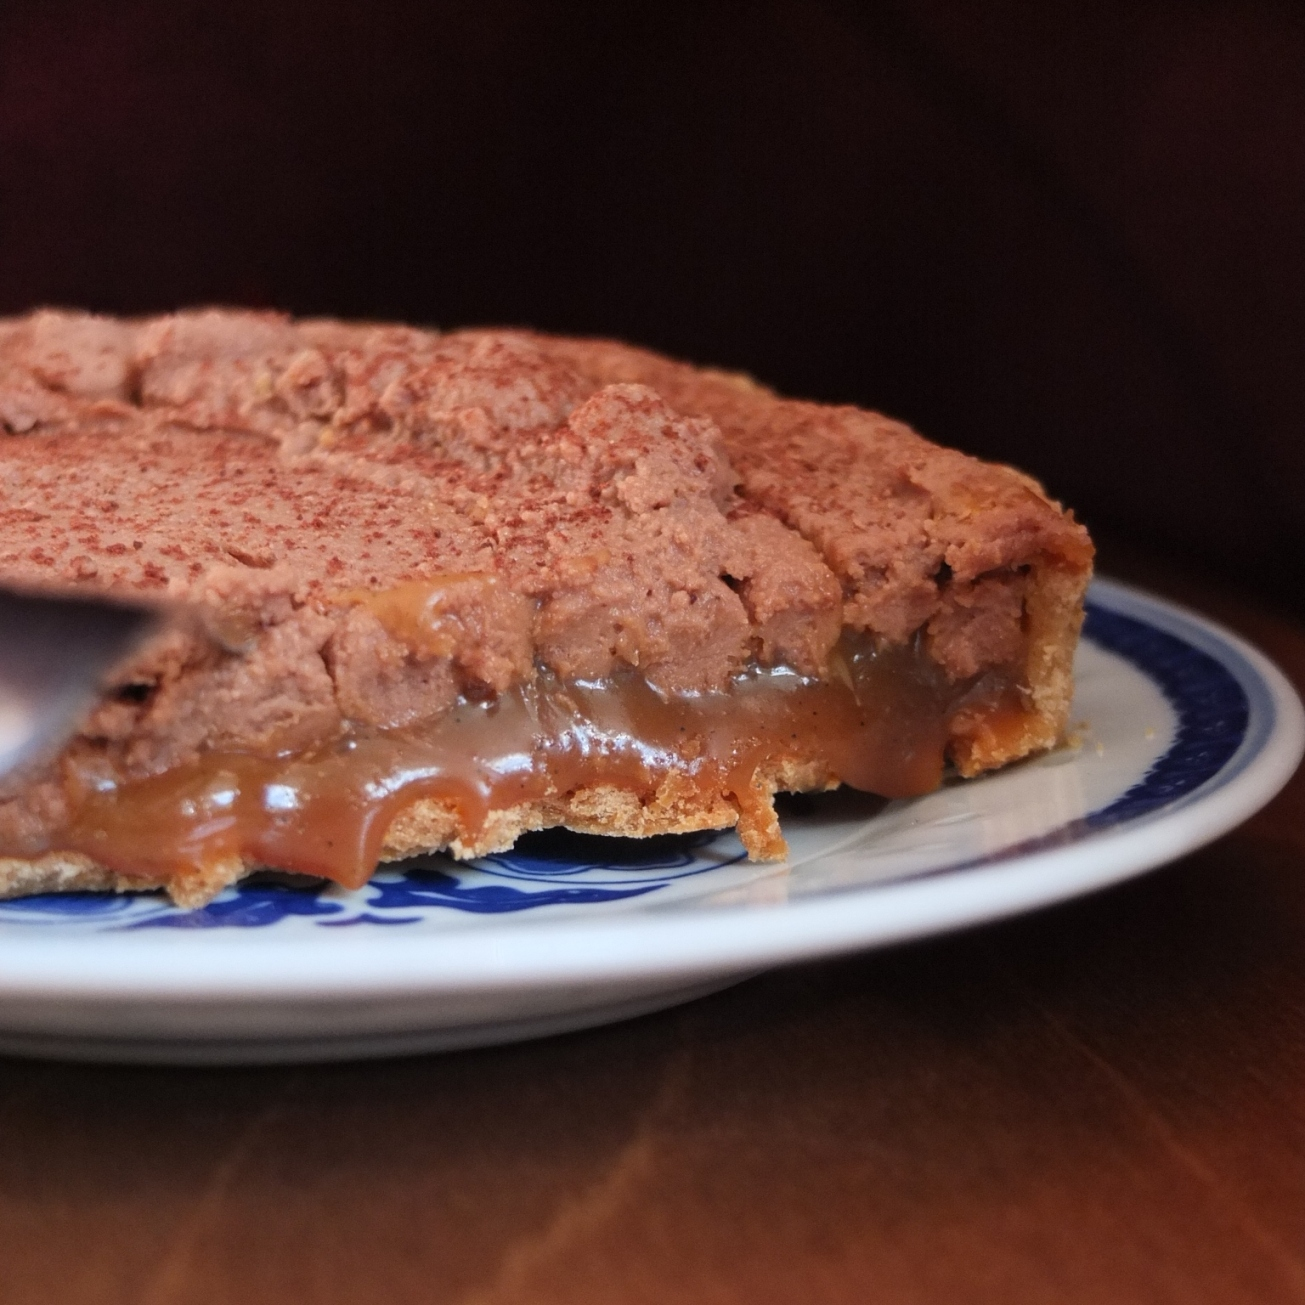 Salted caramel and milk chocolate mousse tart